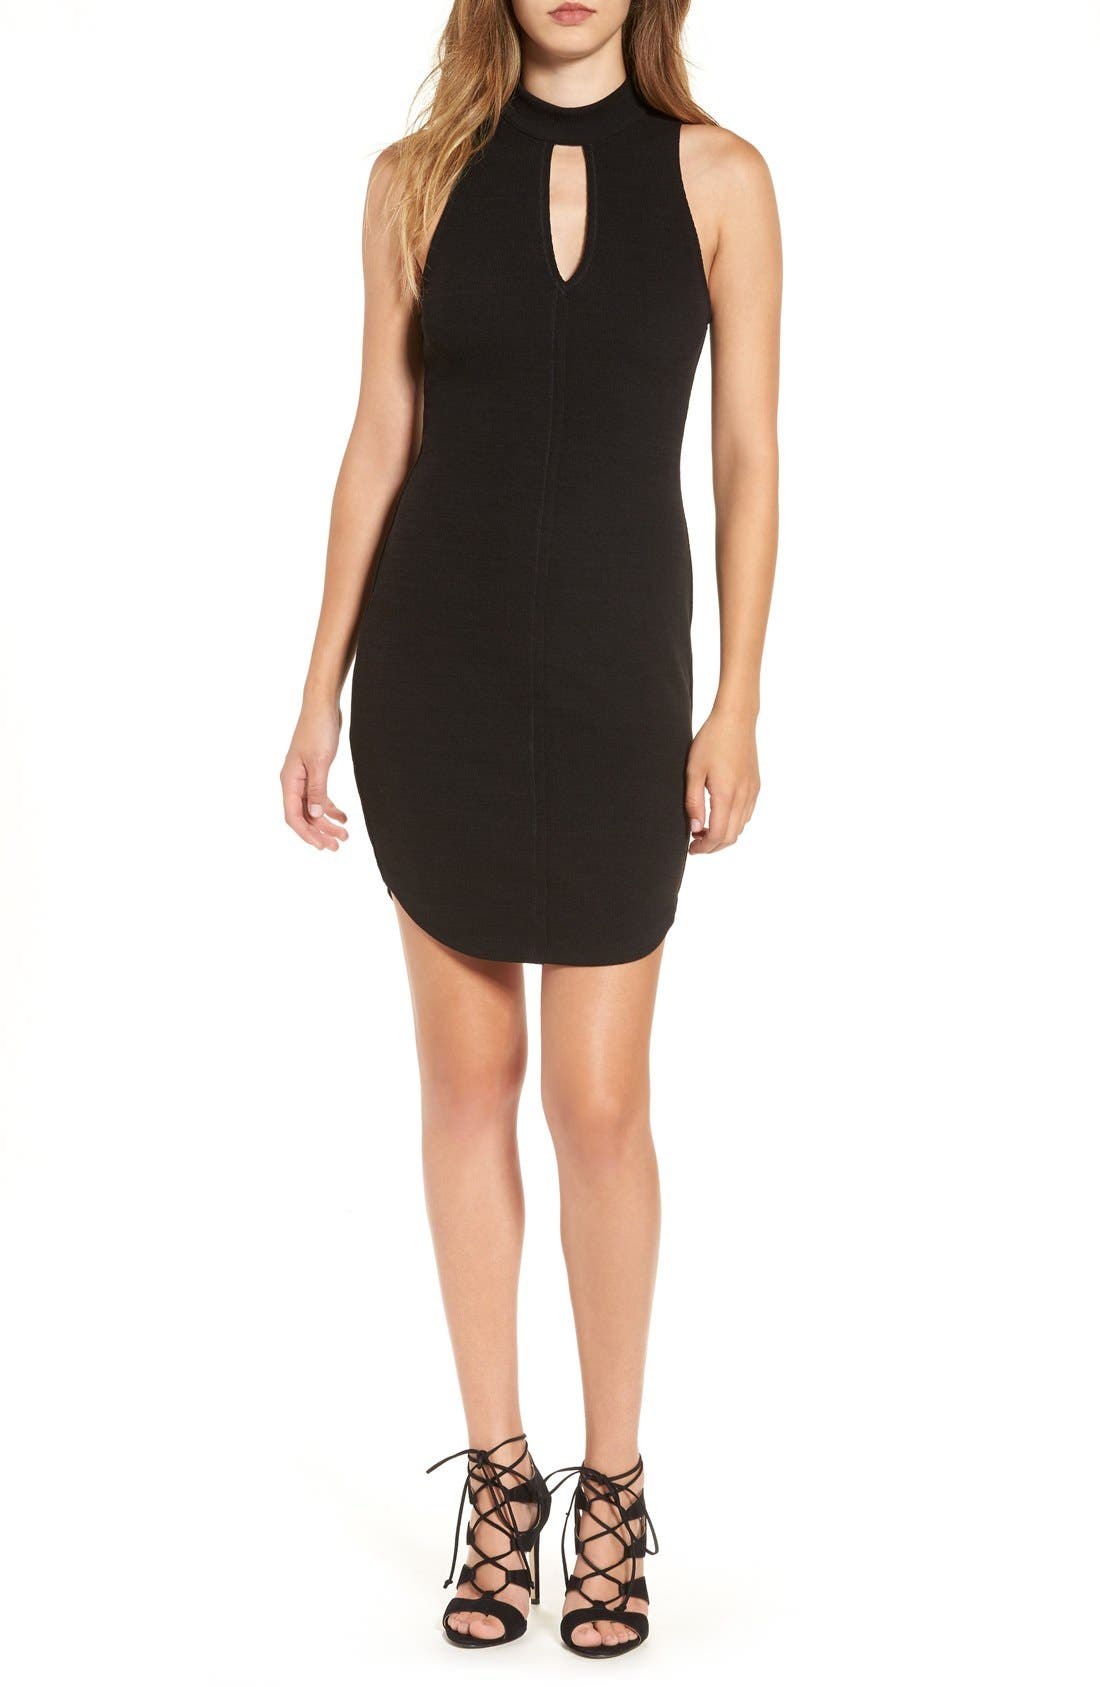 Main Image - ASTR Cutout Knit Body-Con Dress